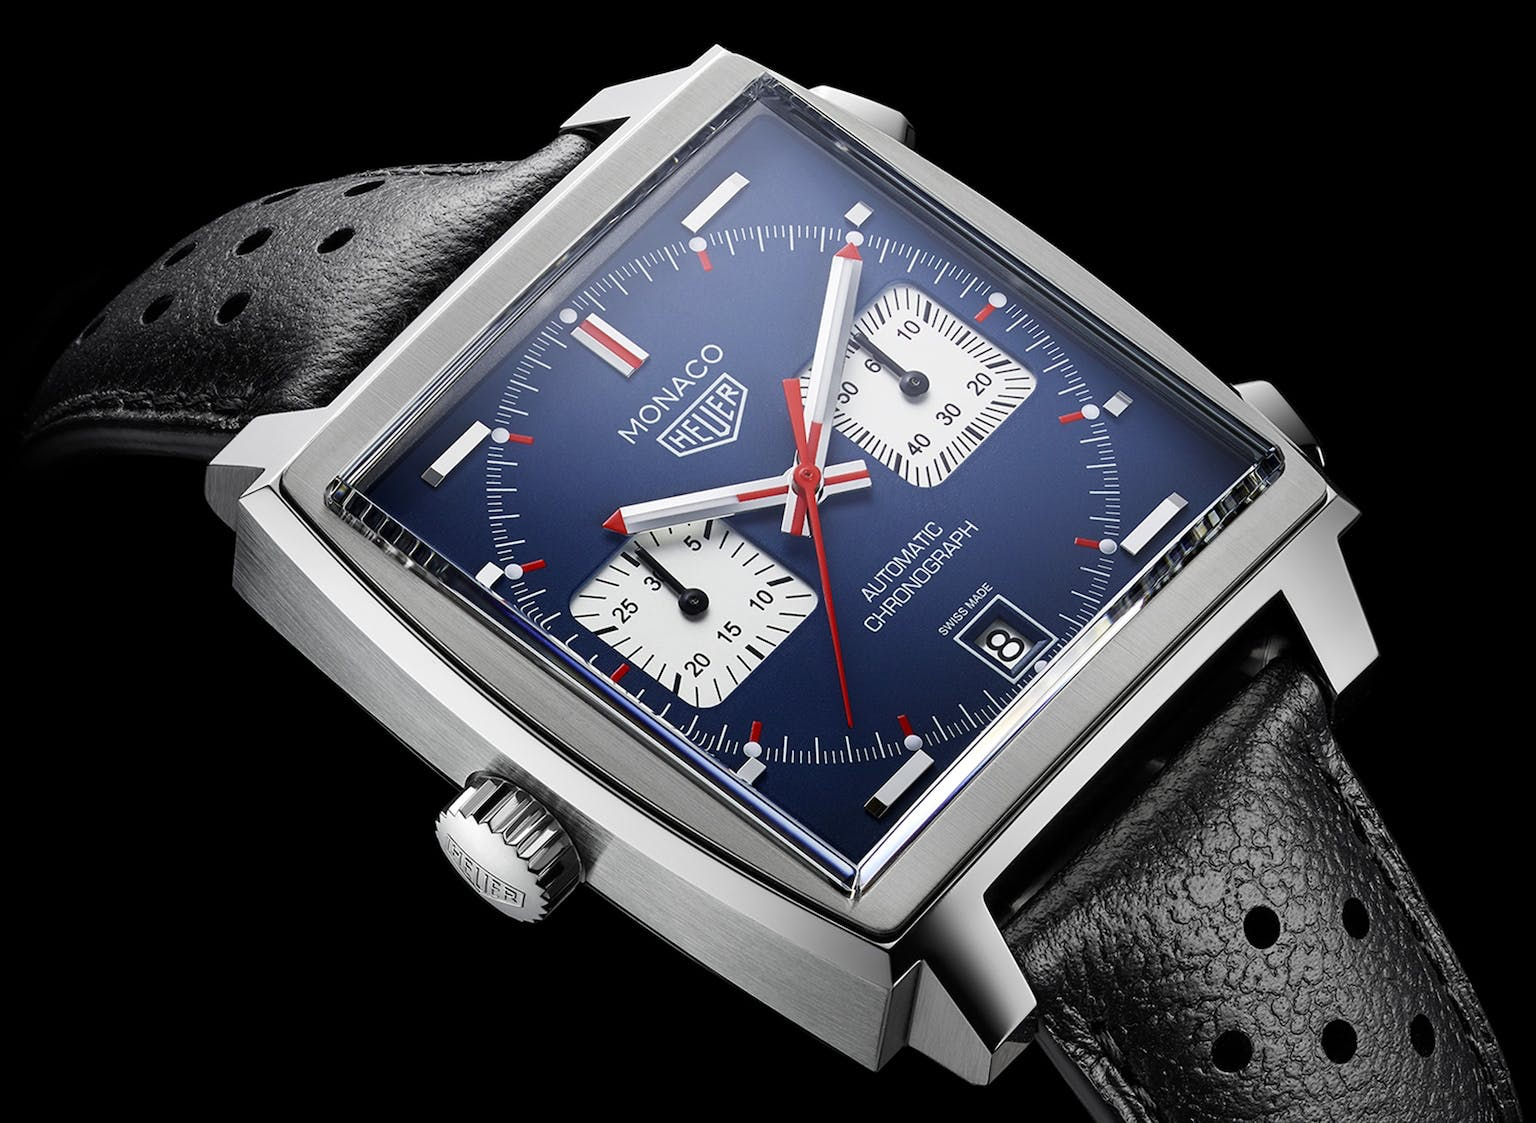 Tag Heuer Monaco - Made famous by Steve McQueen